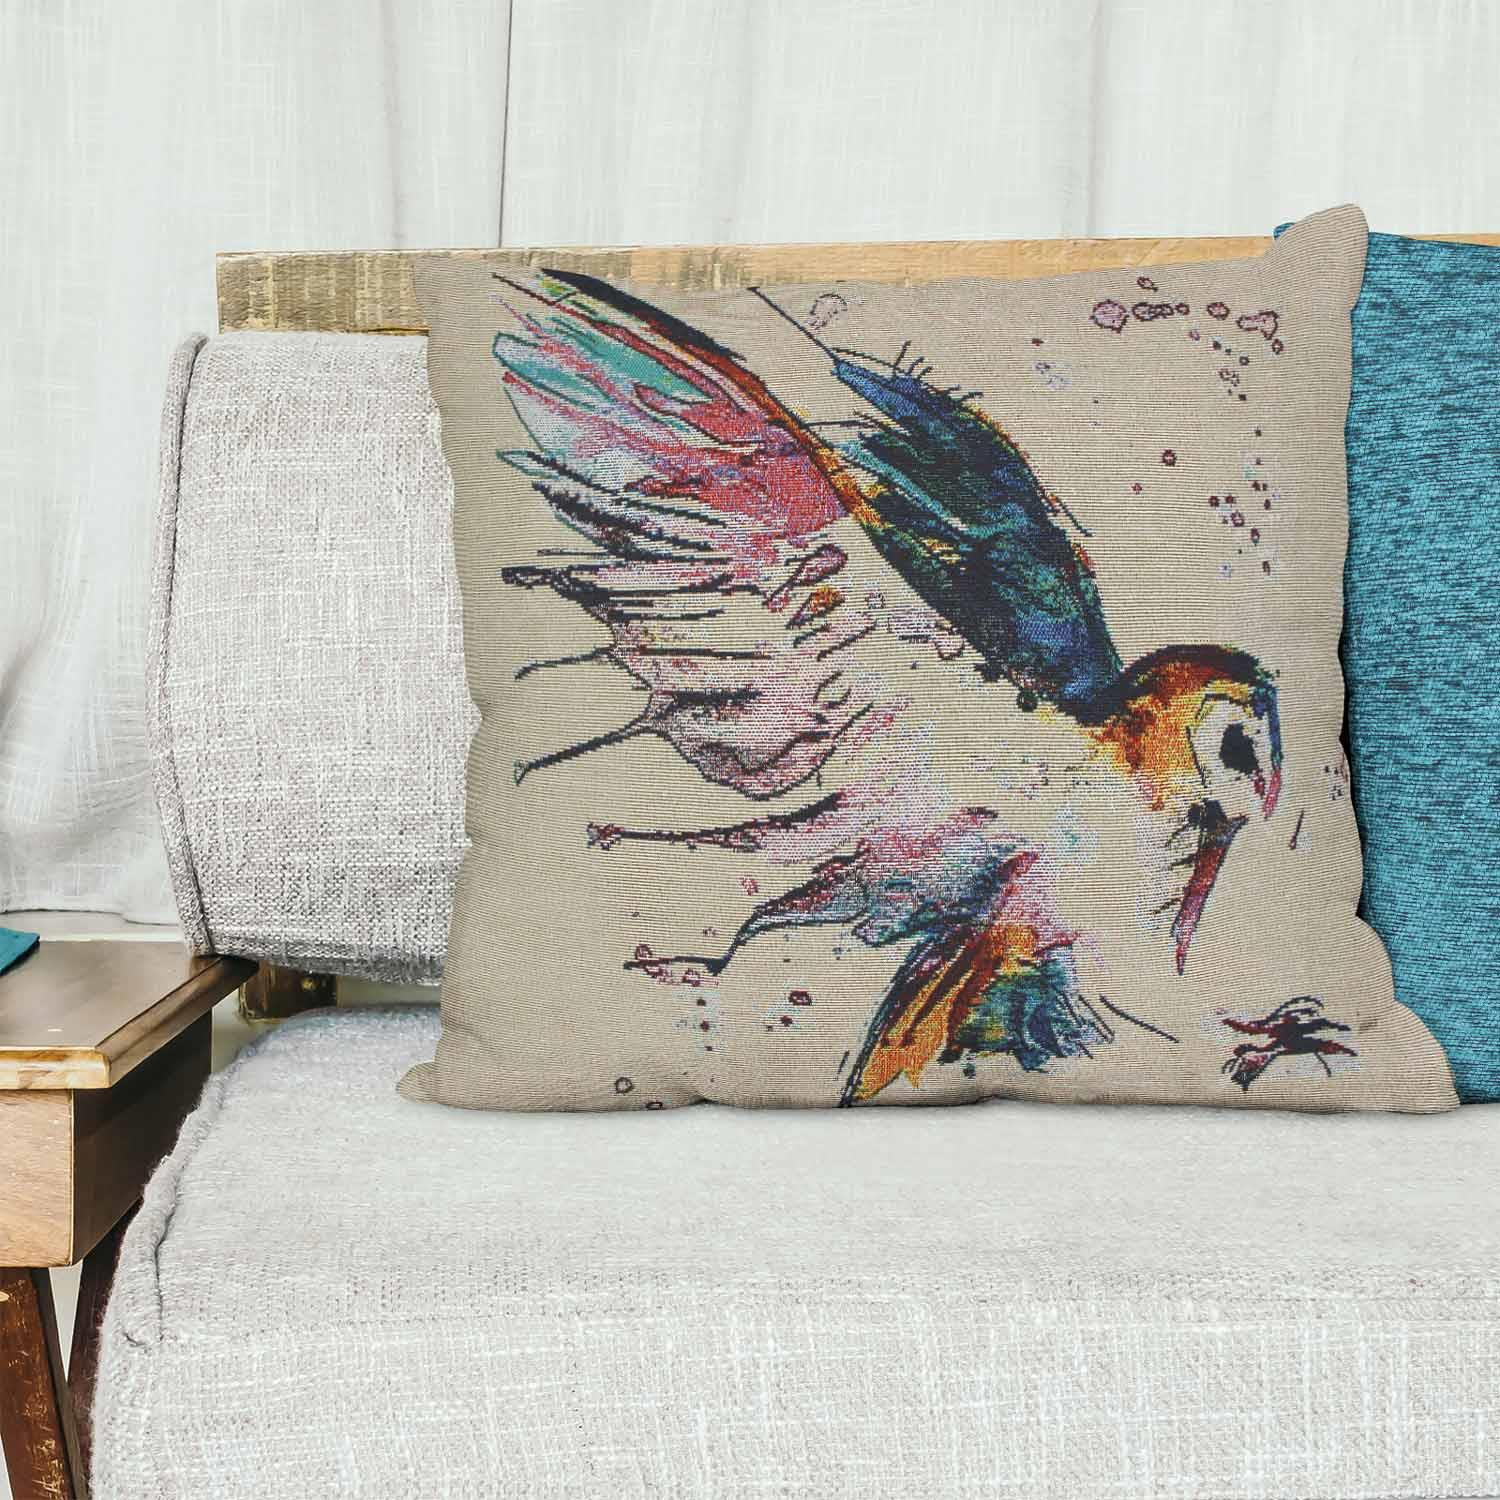 Tapestry-Cushion-Covers-Vintage-Pillow-Cover-Collection-18-034-45cm-Filled-Cushions thumbnail 6